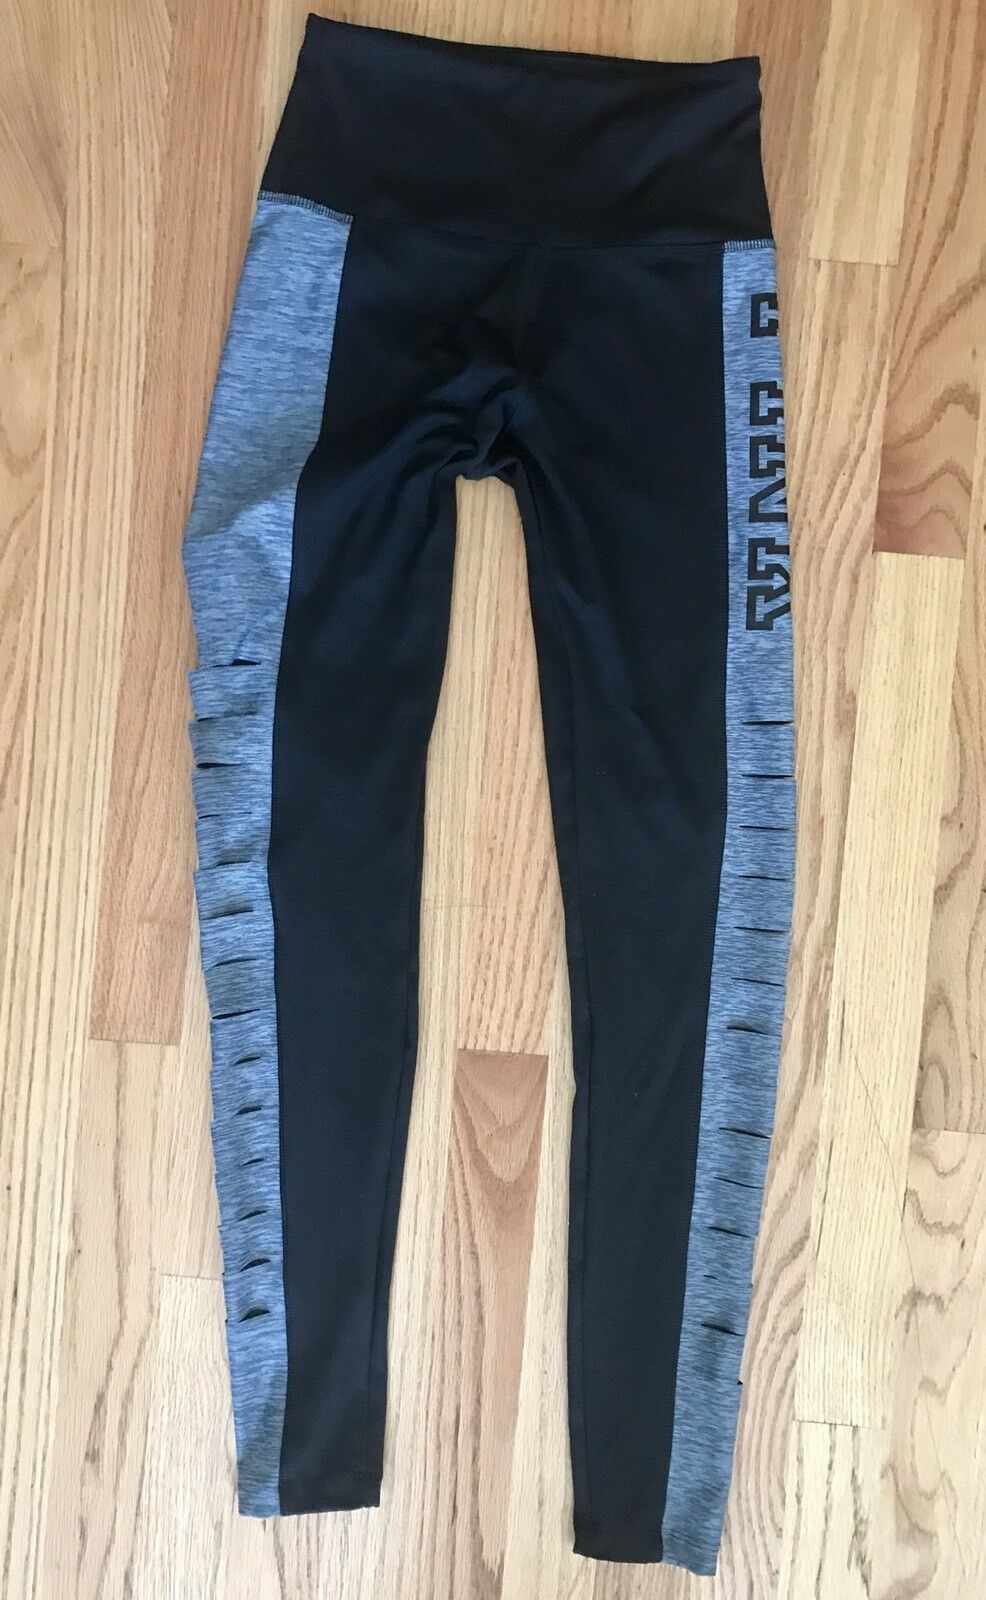 New Victoria's Secret PINK High Waist Ultimate Yoga Leggings XS